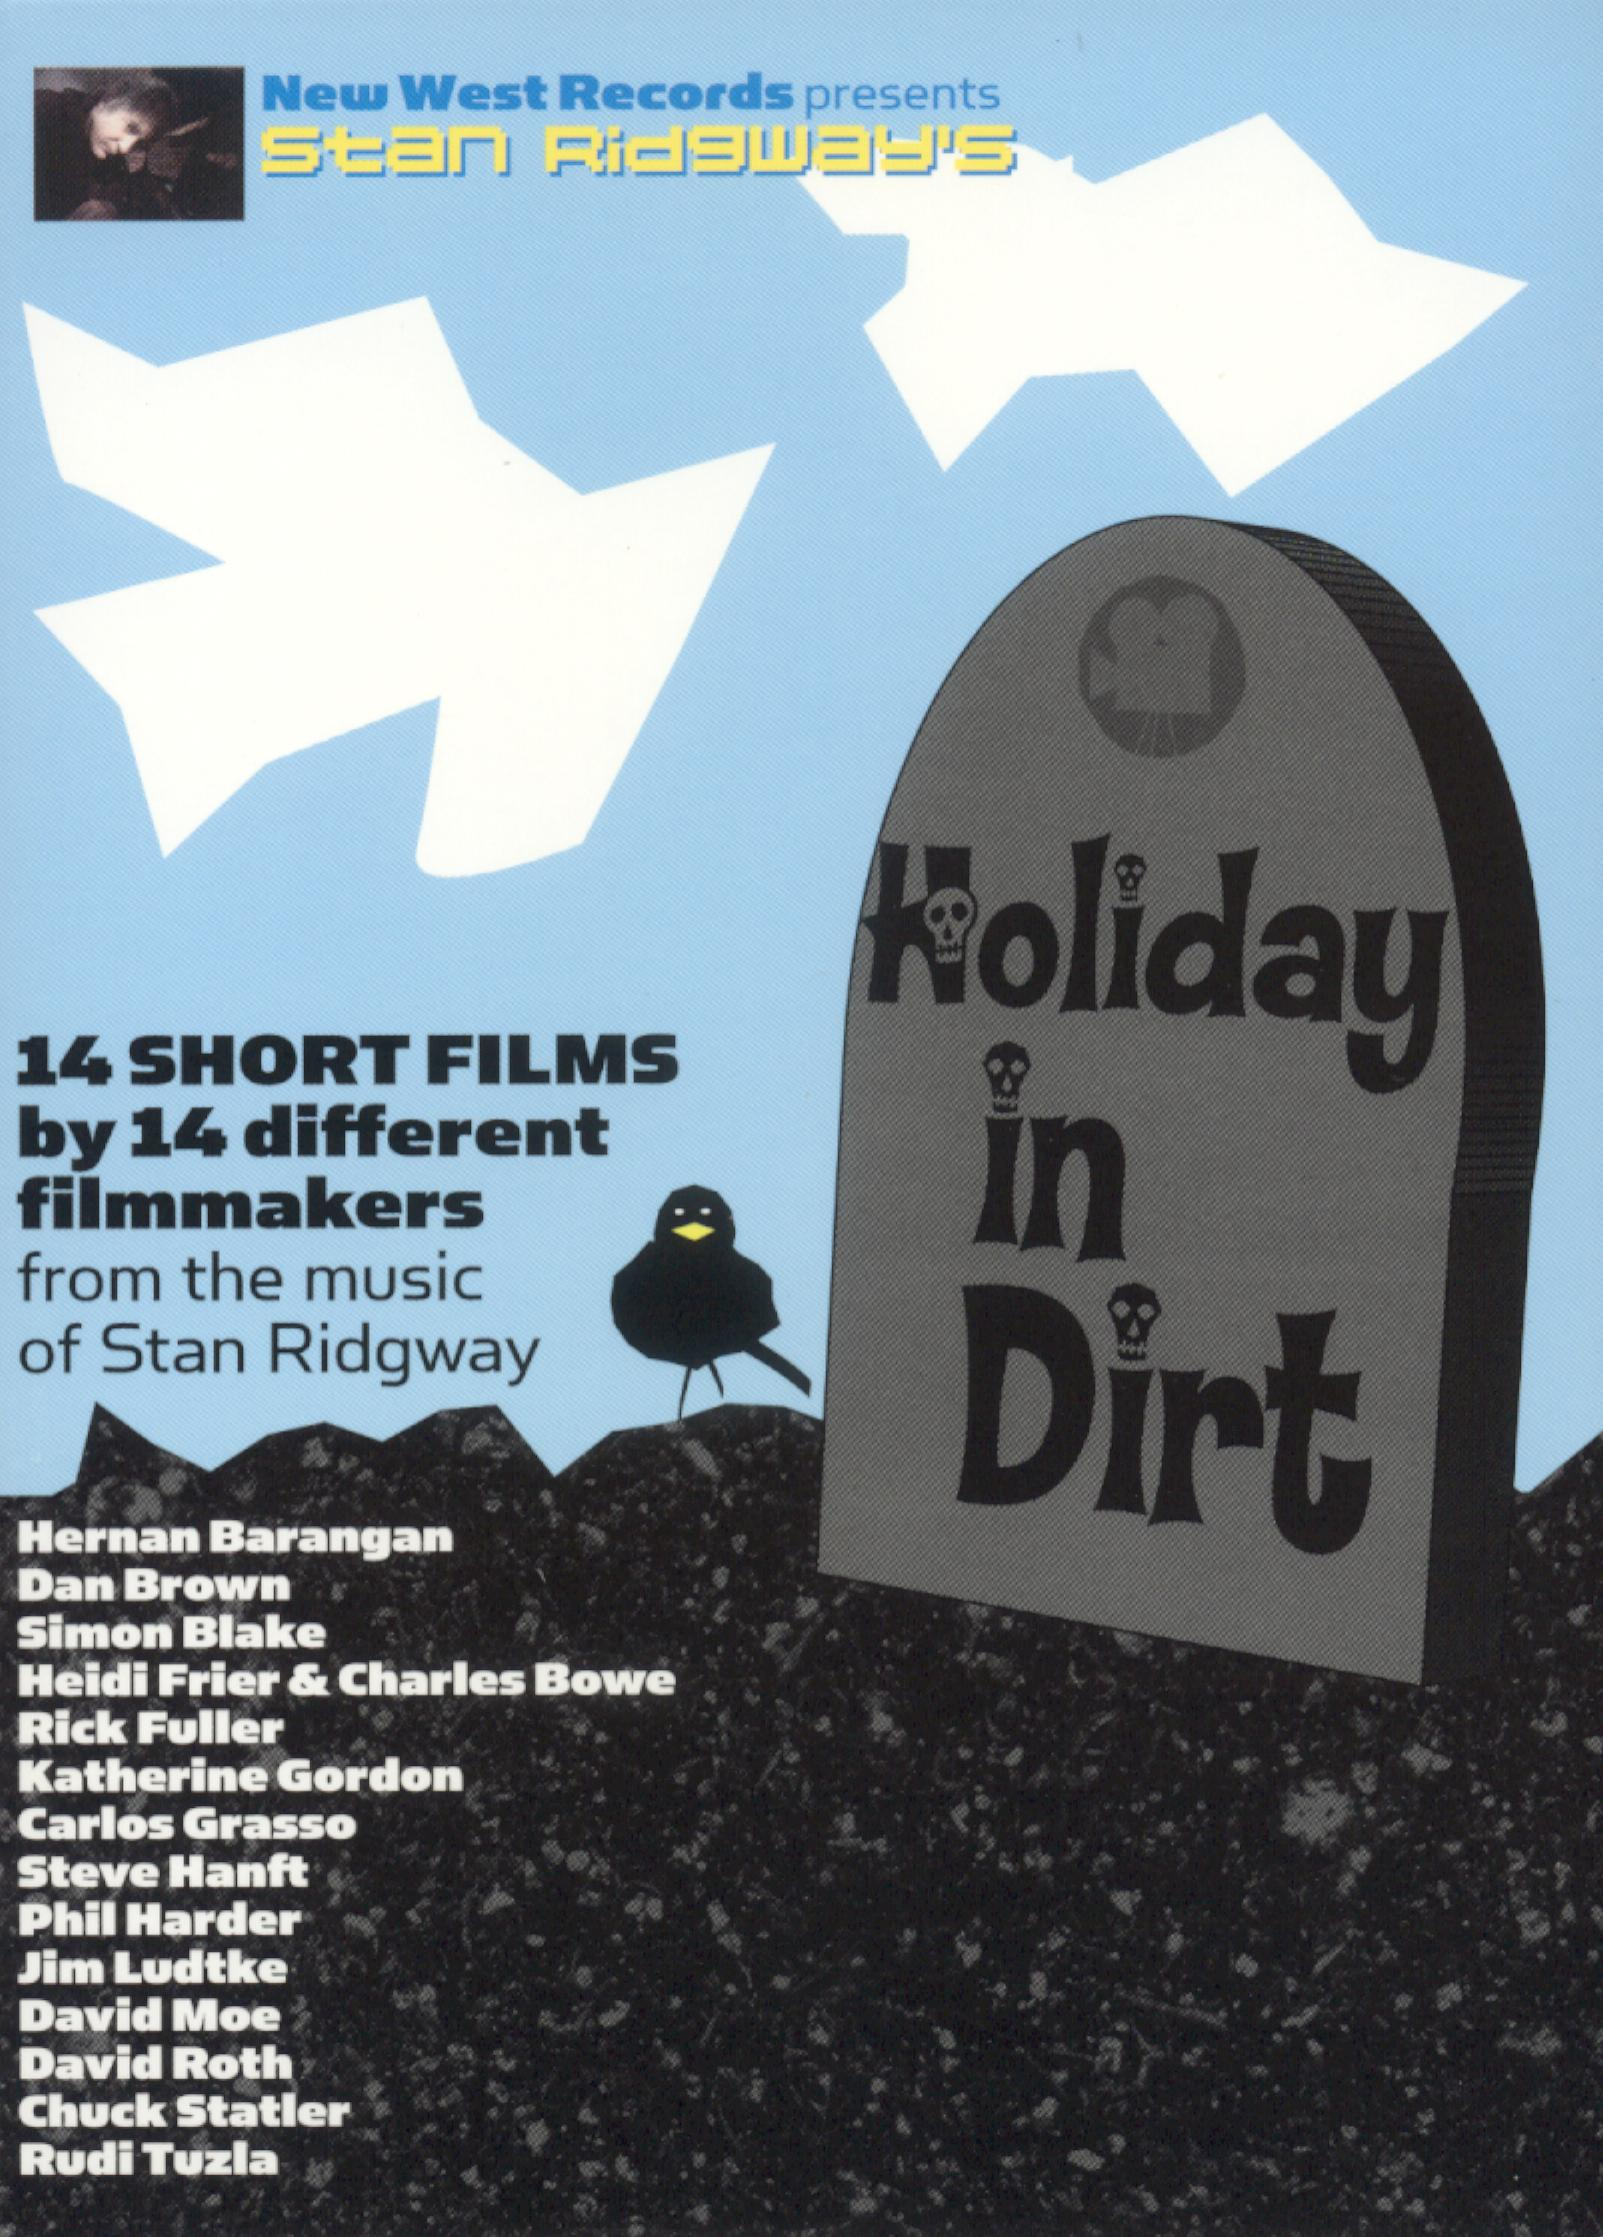 Stan Ridgway: Holiday In Dirt